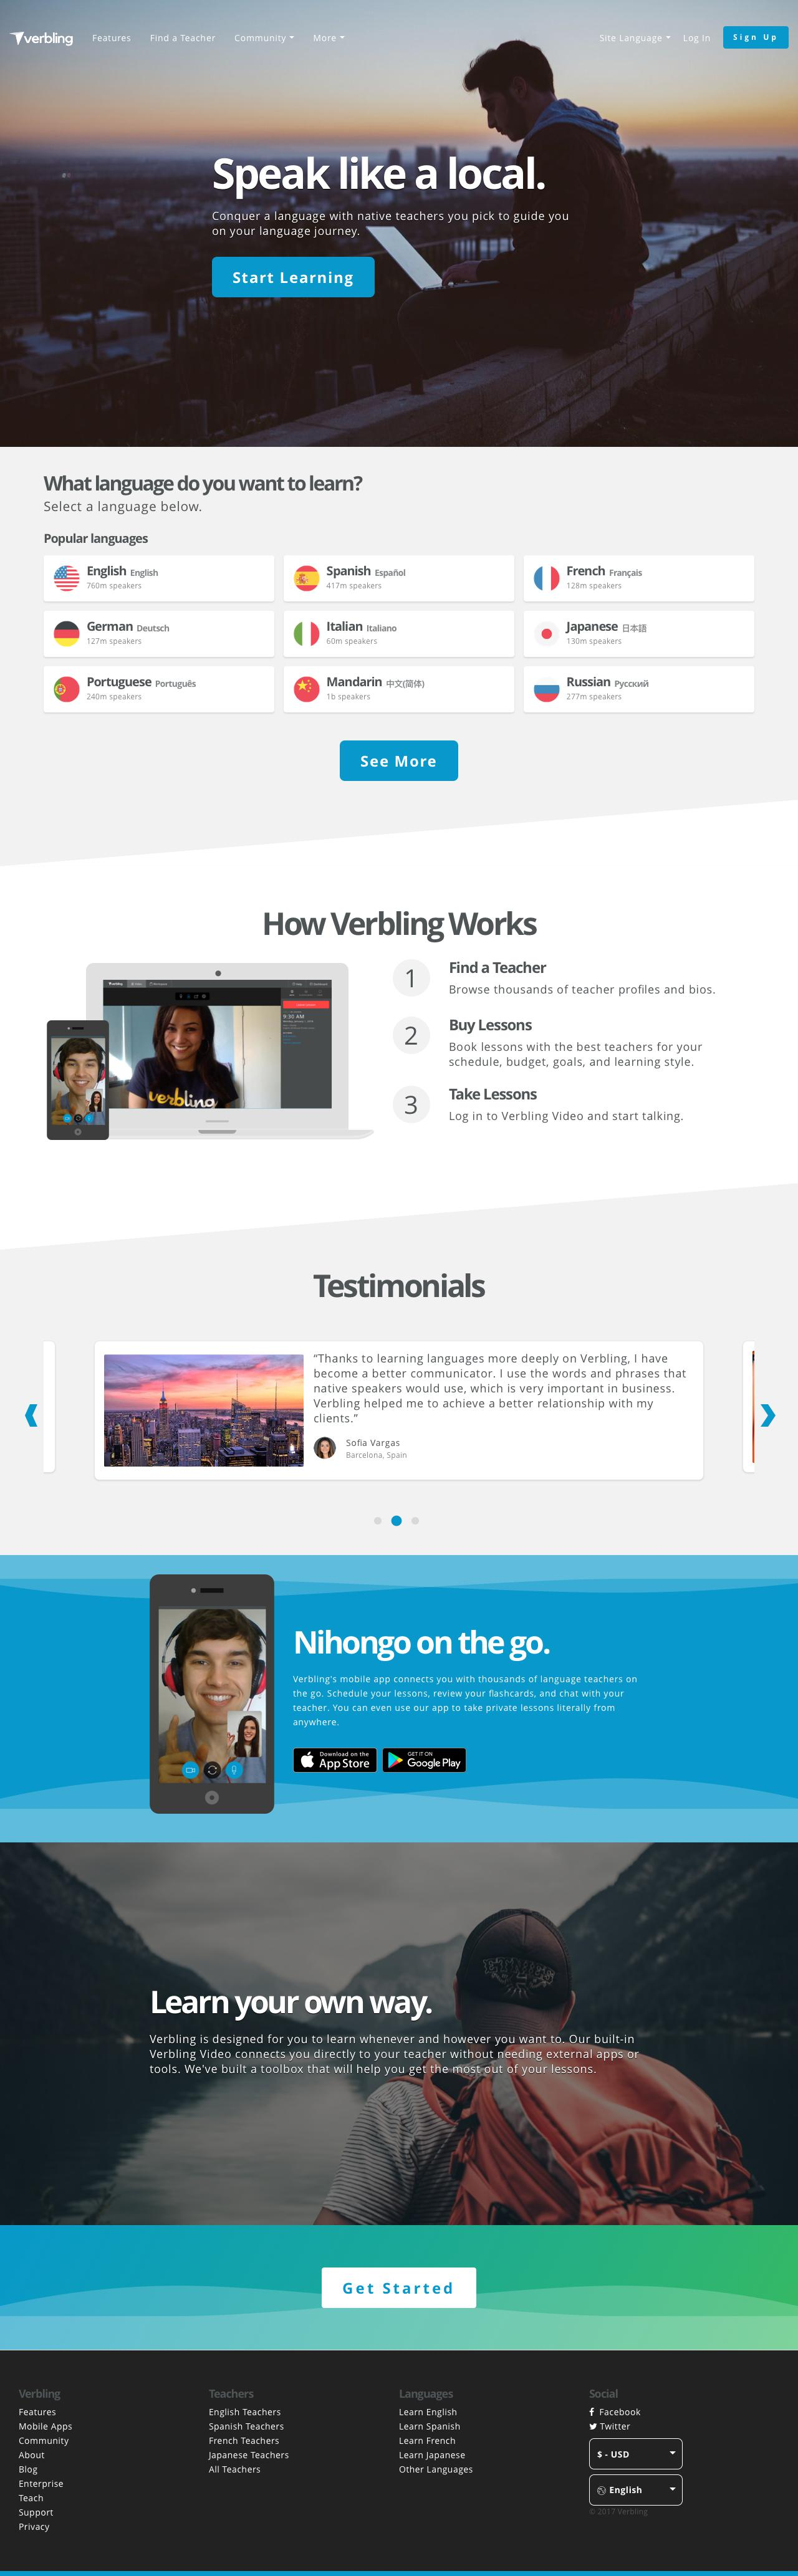 Screenshot of verbling.com - Verbling - The Modern Way to Learn a Language. - captured Dec. 1, 2017